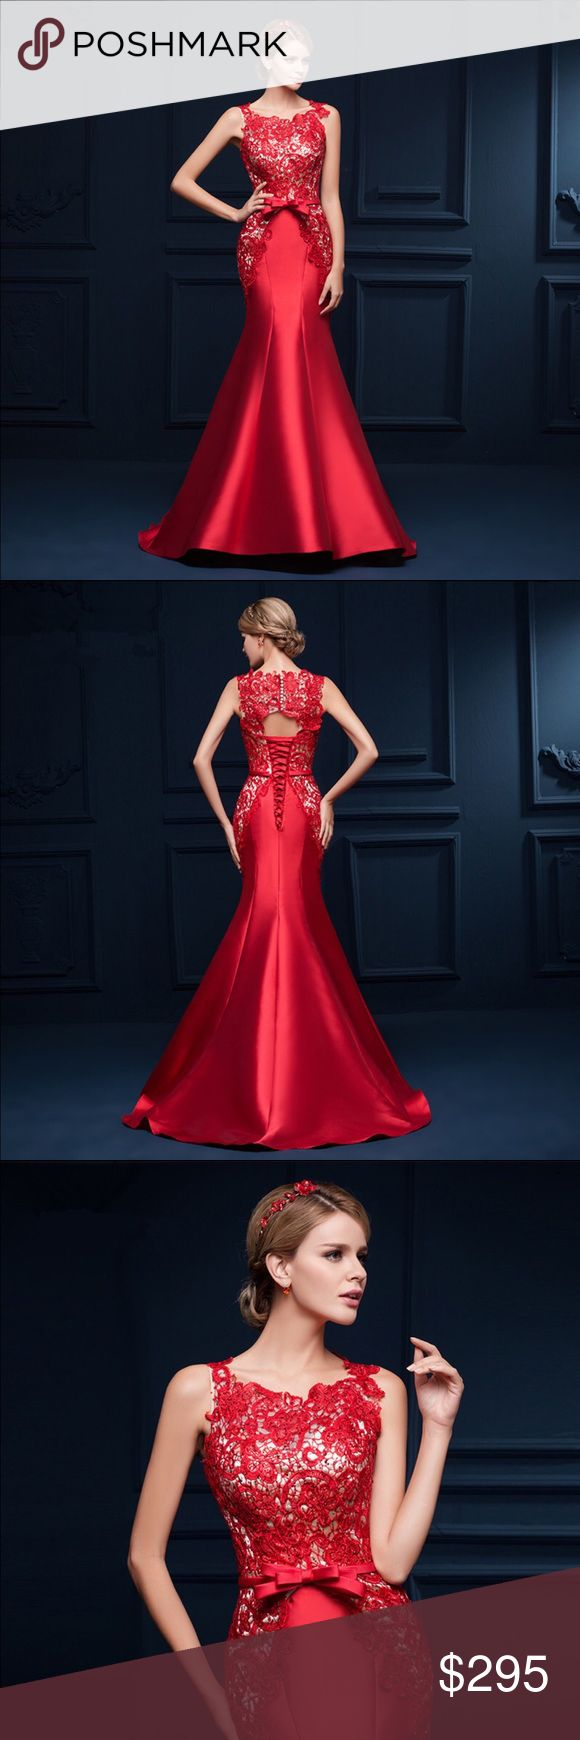 *COMING SOON* Red Lace Mermaid Evening Dress Seductive Red Lace Mermaid Evening Dress Long Formal Gowns Lace Up robe de soiree Dresses Wedding